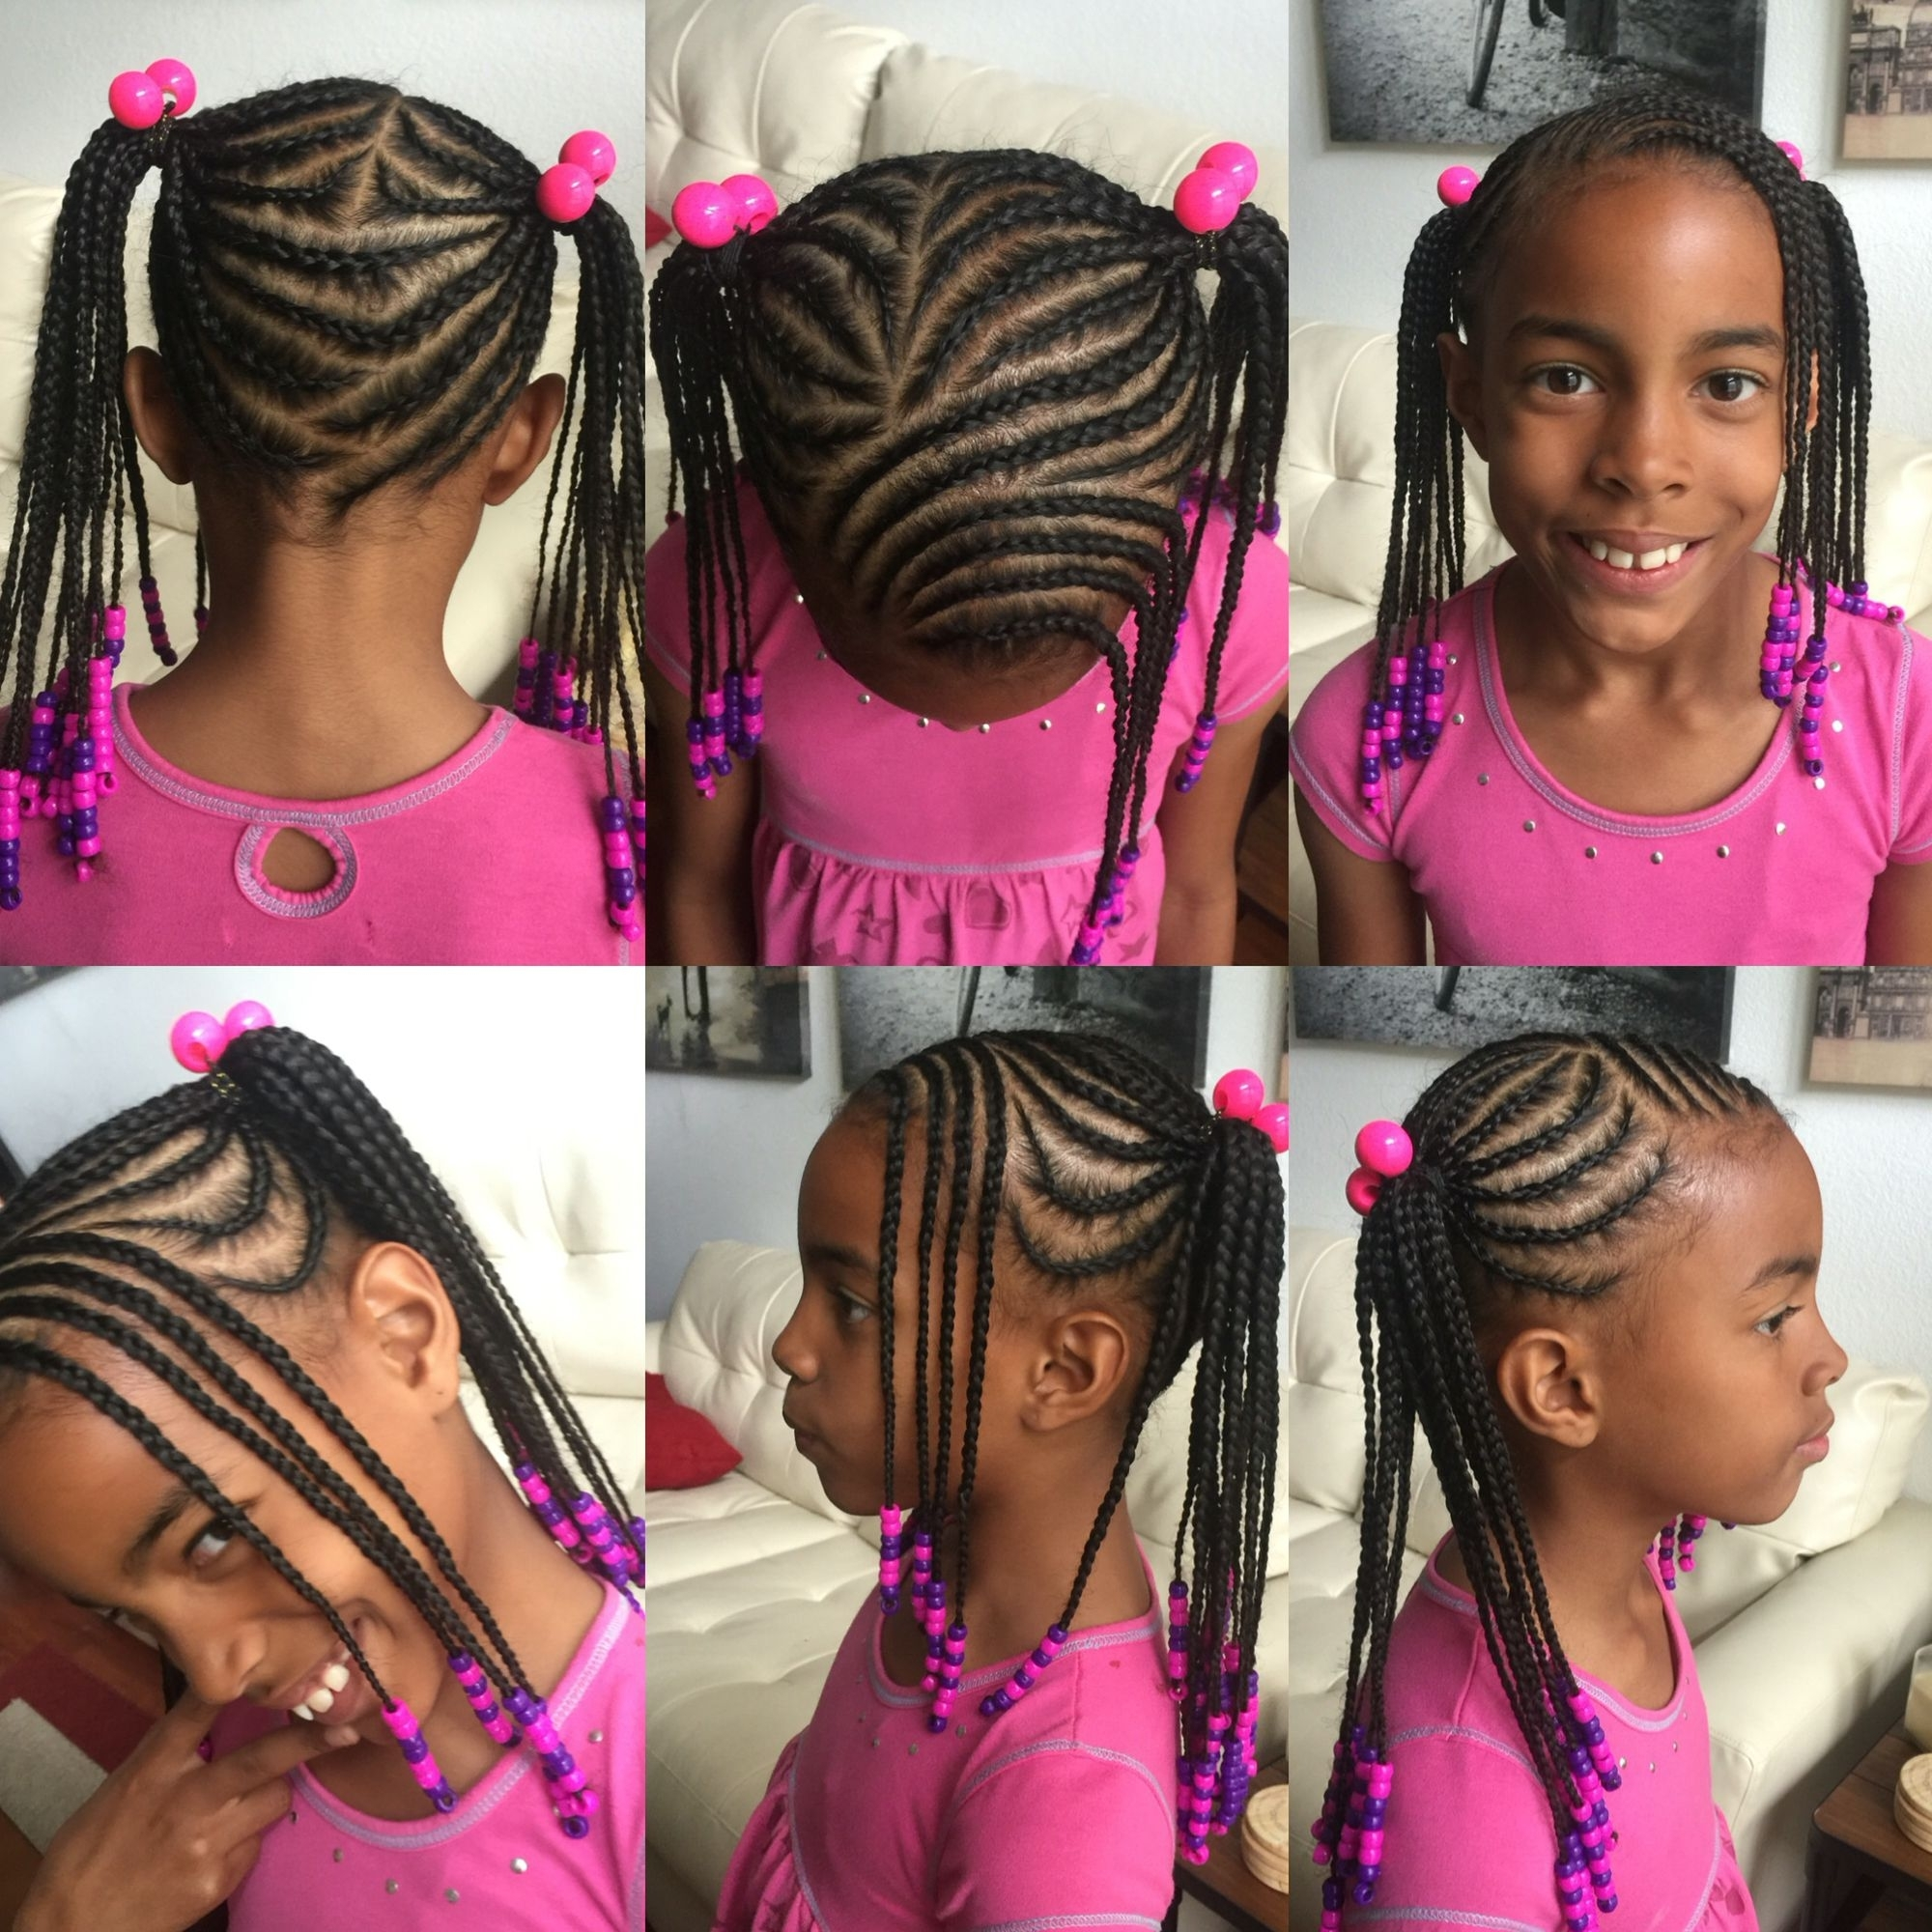 Kids Braided Hairstyle (View 15 of 20)